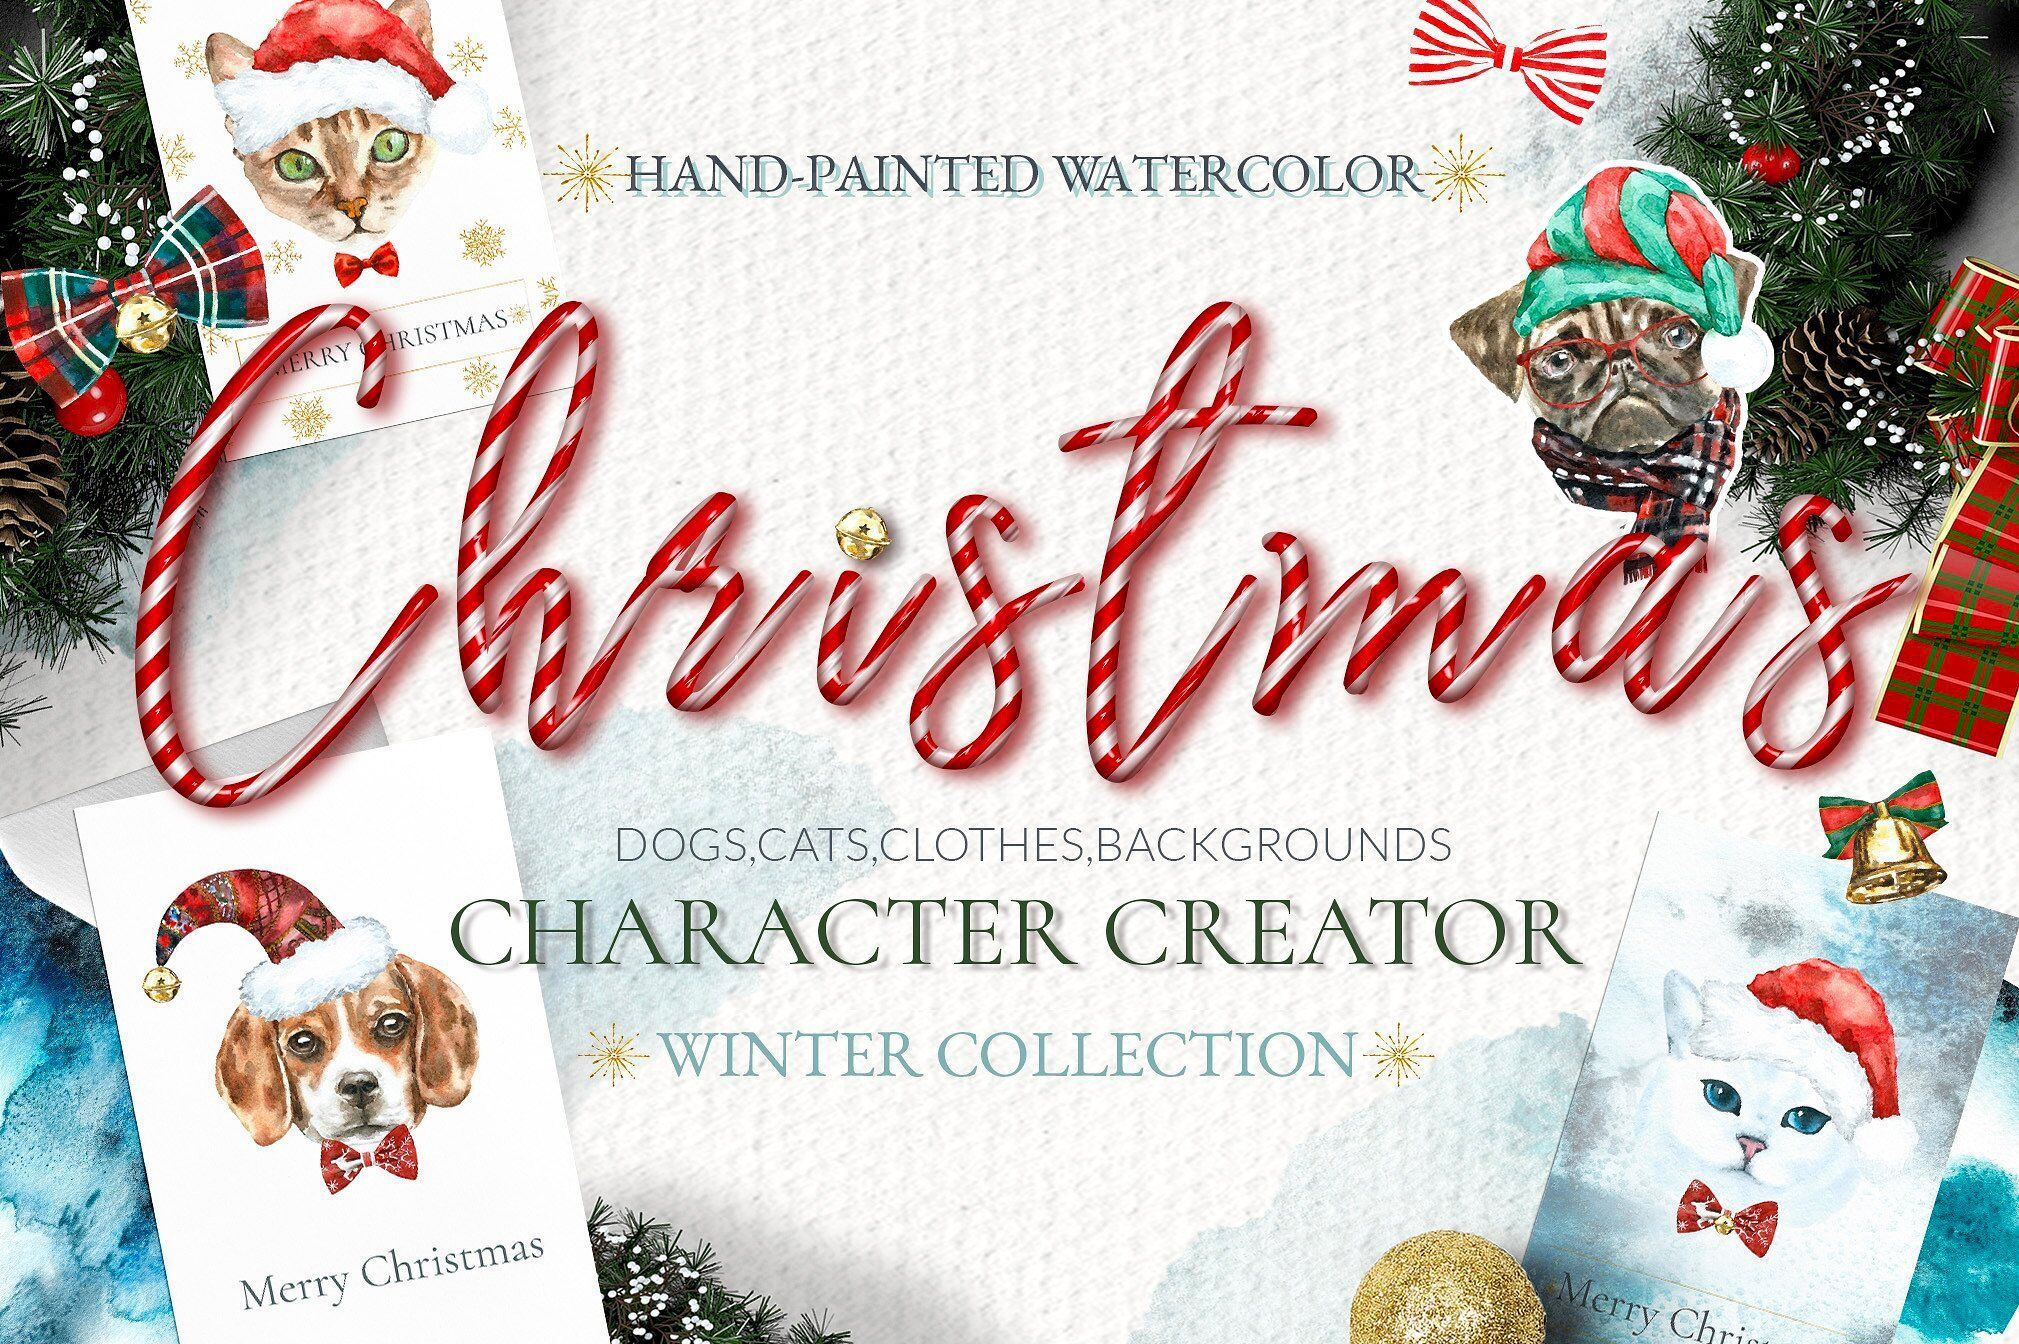 Christmas Animal Creator Watercolor Dogs Cats Sale By Catherine